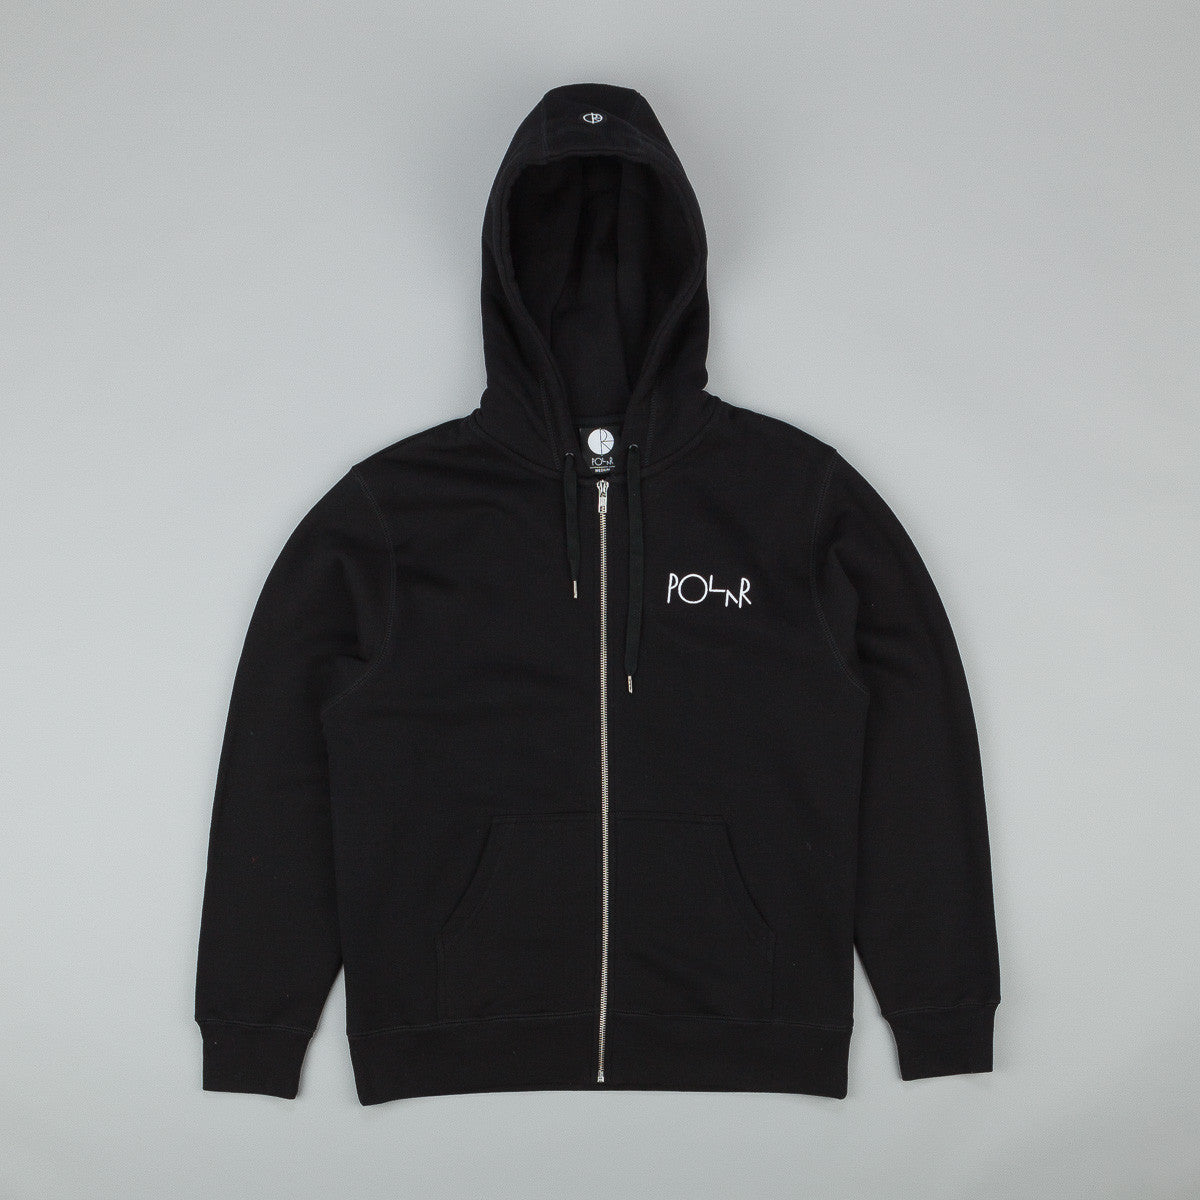 Polar Stroke Logo Patch Zip Hooded Sweatshirt